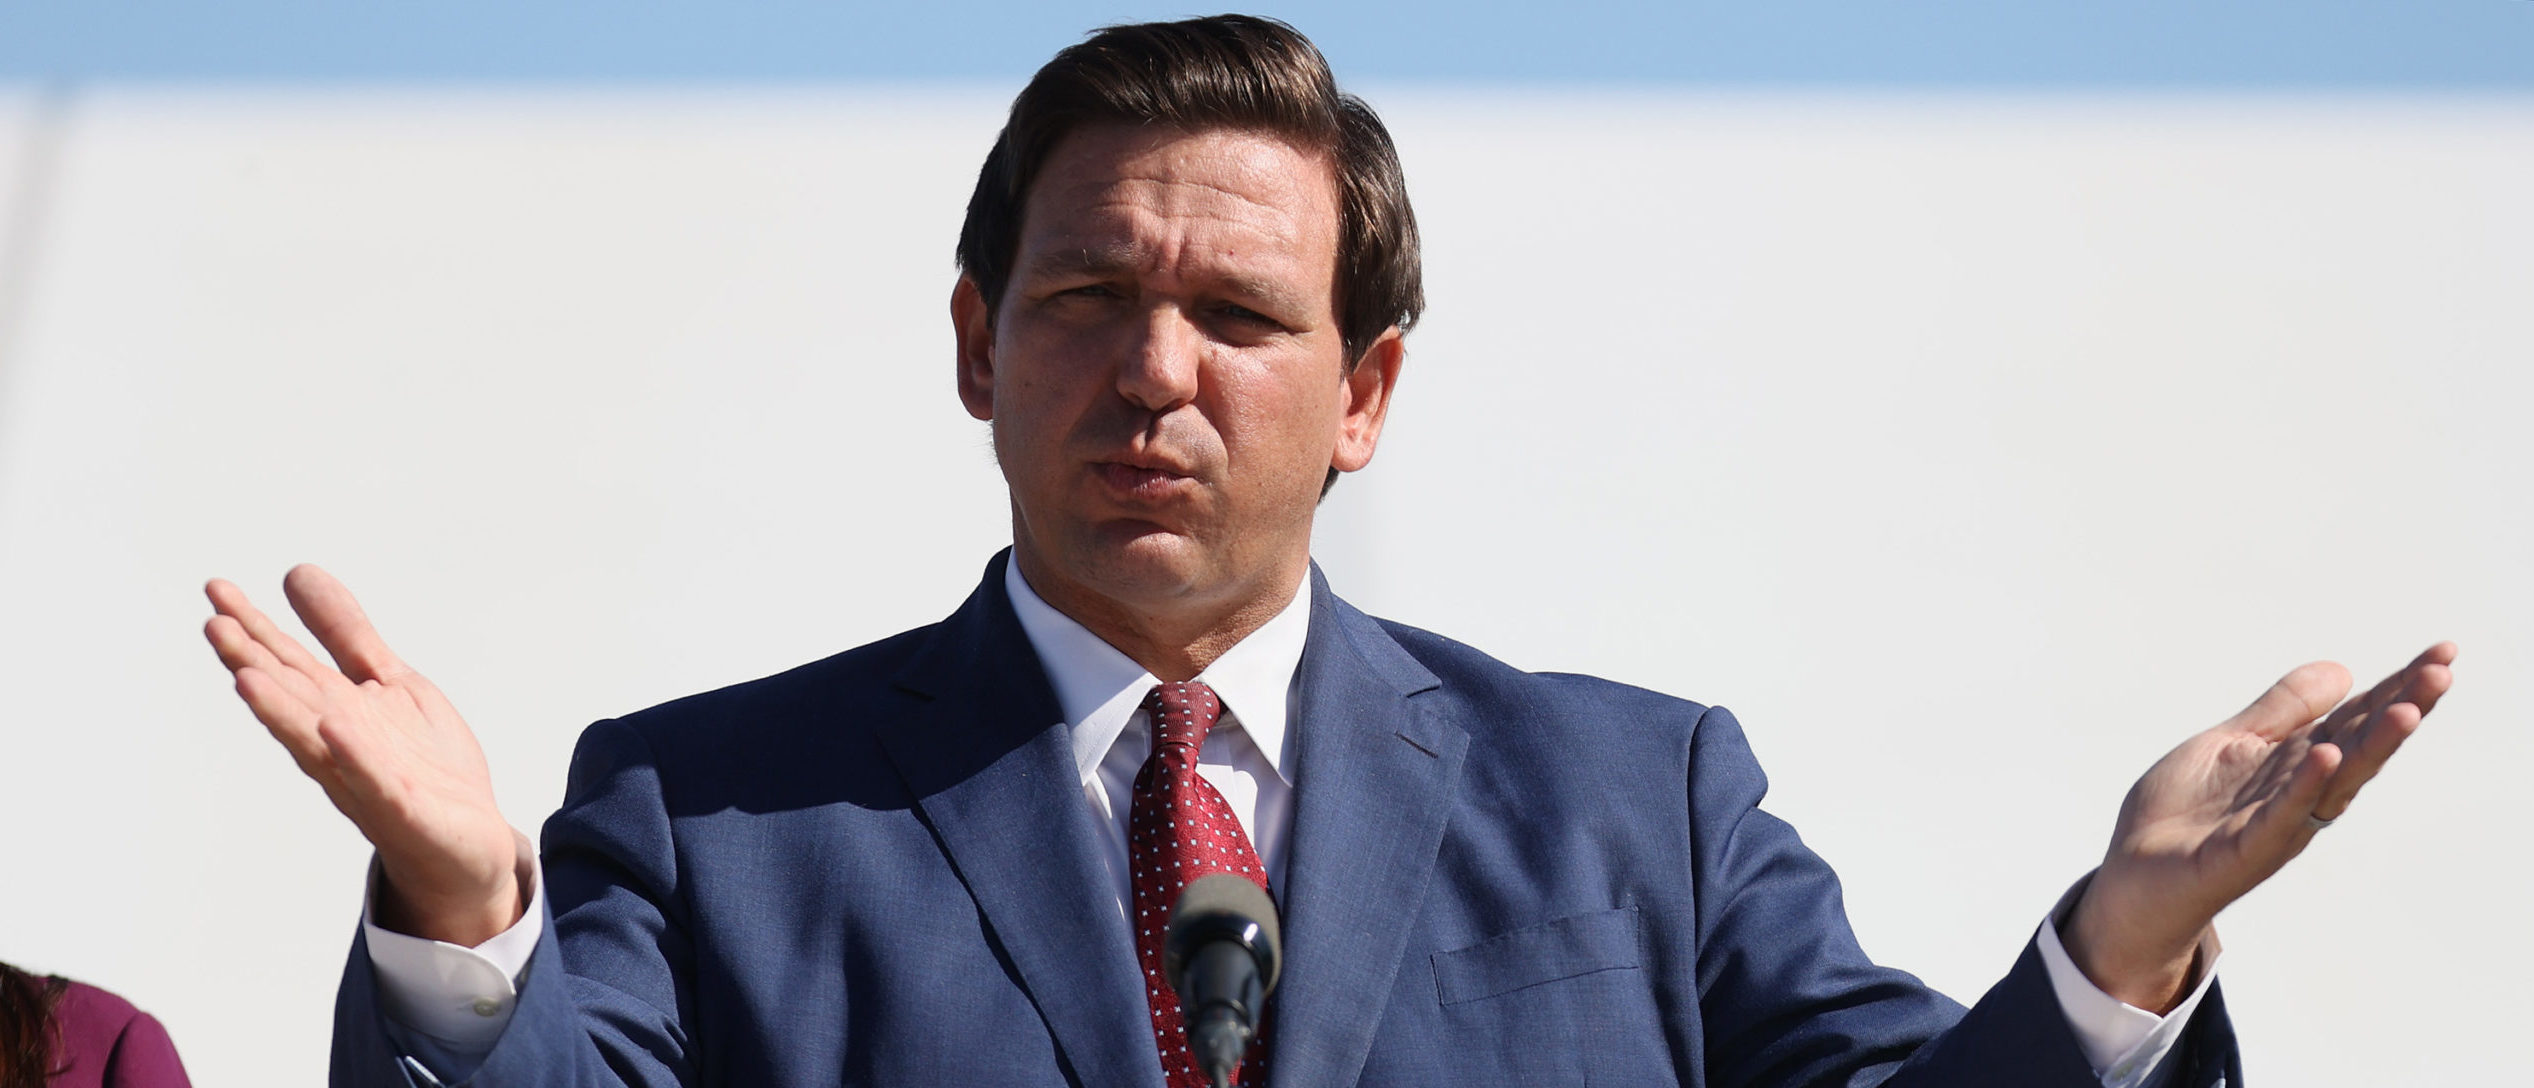 Florida Governor Ron DeSantis speaks during a press conference about the opening of a COVID-19 vaccination site at the Hard Rock Stadium on January 06, 2021 in Miami Gardens, Florida. (Joe Raedle/Getty Images)